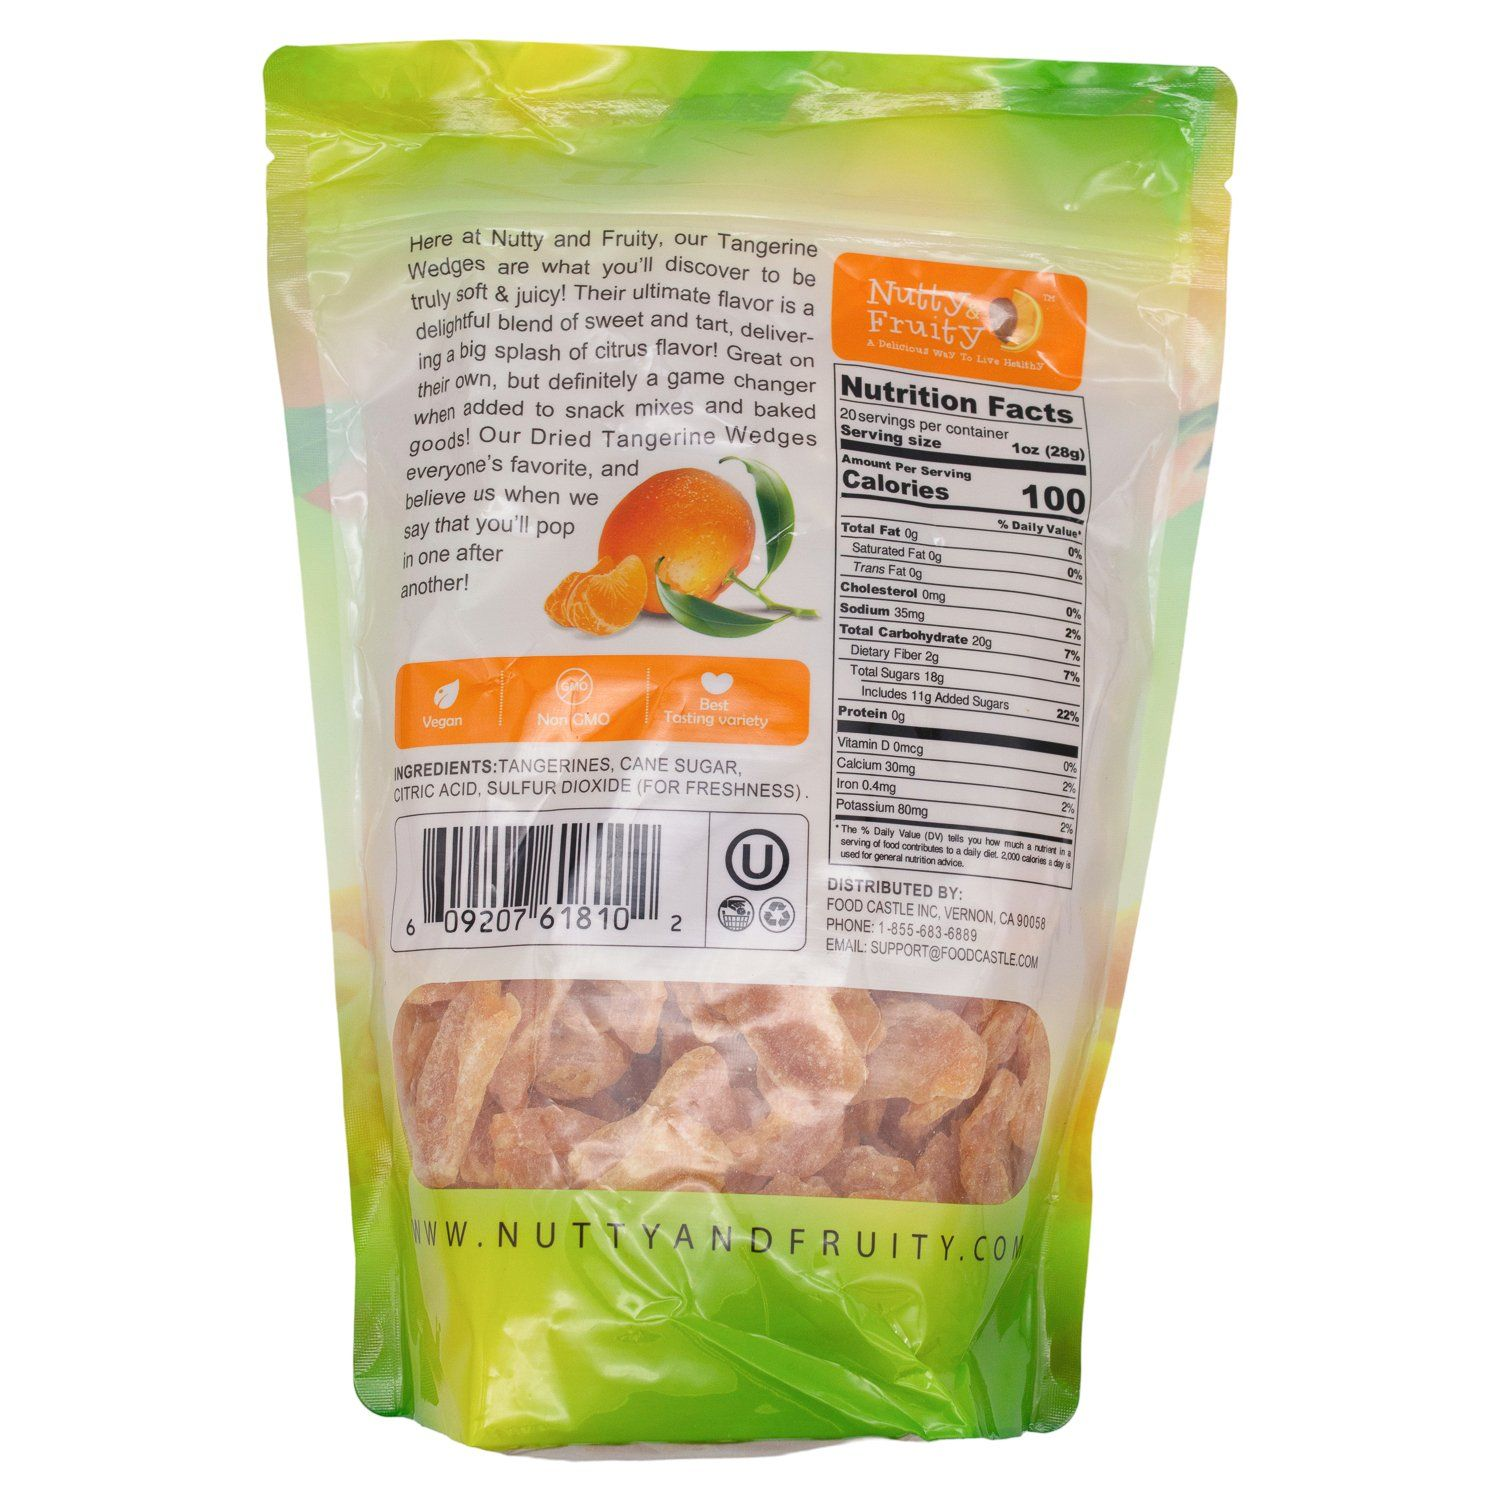 Nutty Fruity Dried Tangerine Wedges Nutty & Fruity